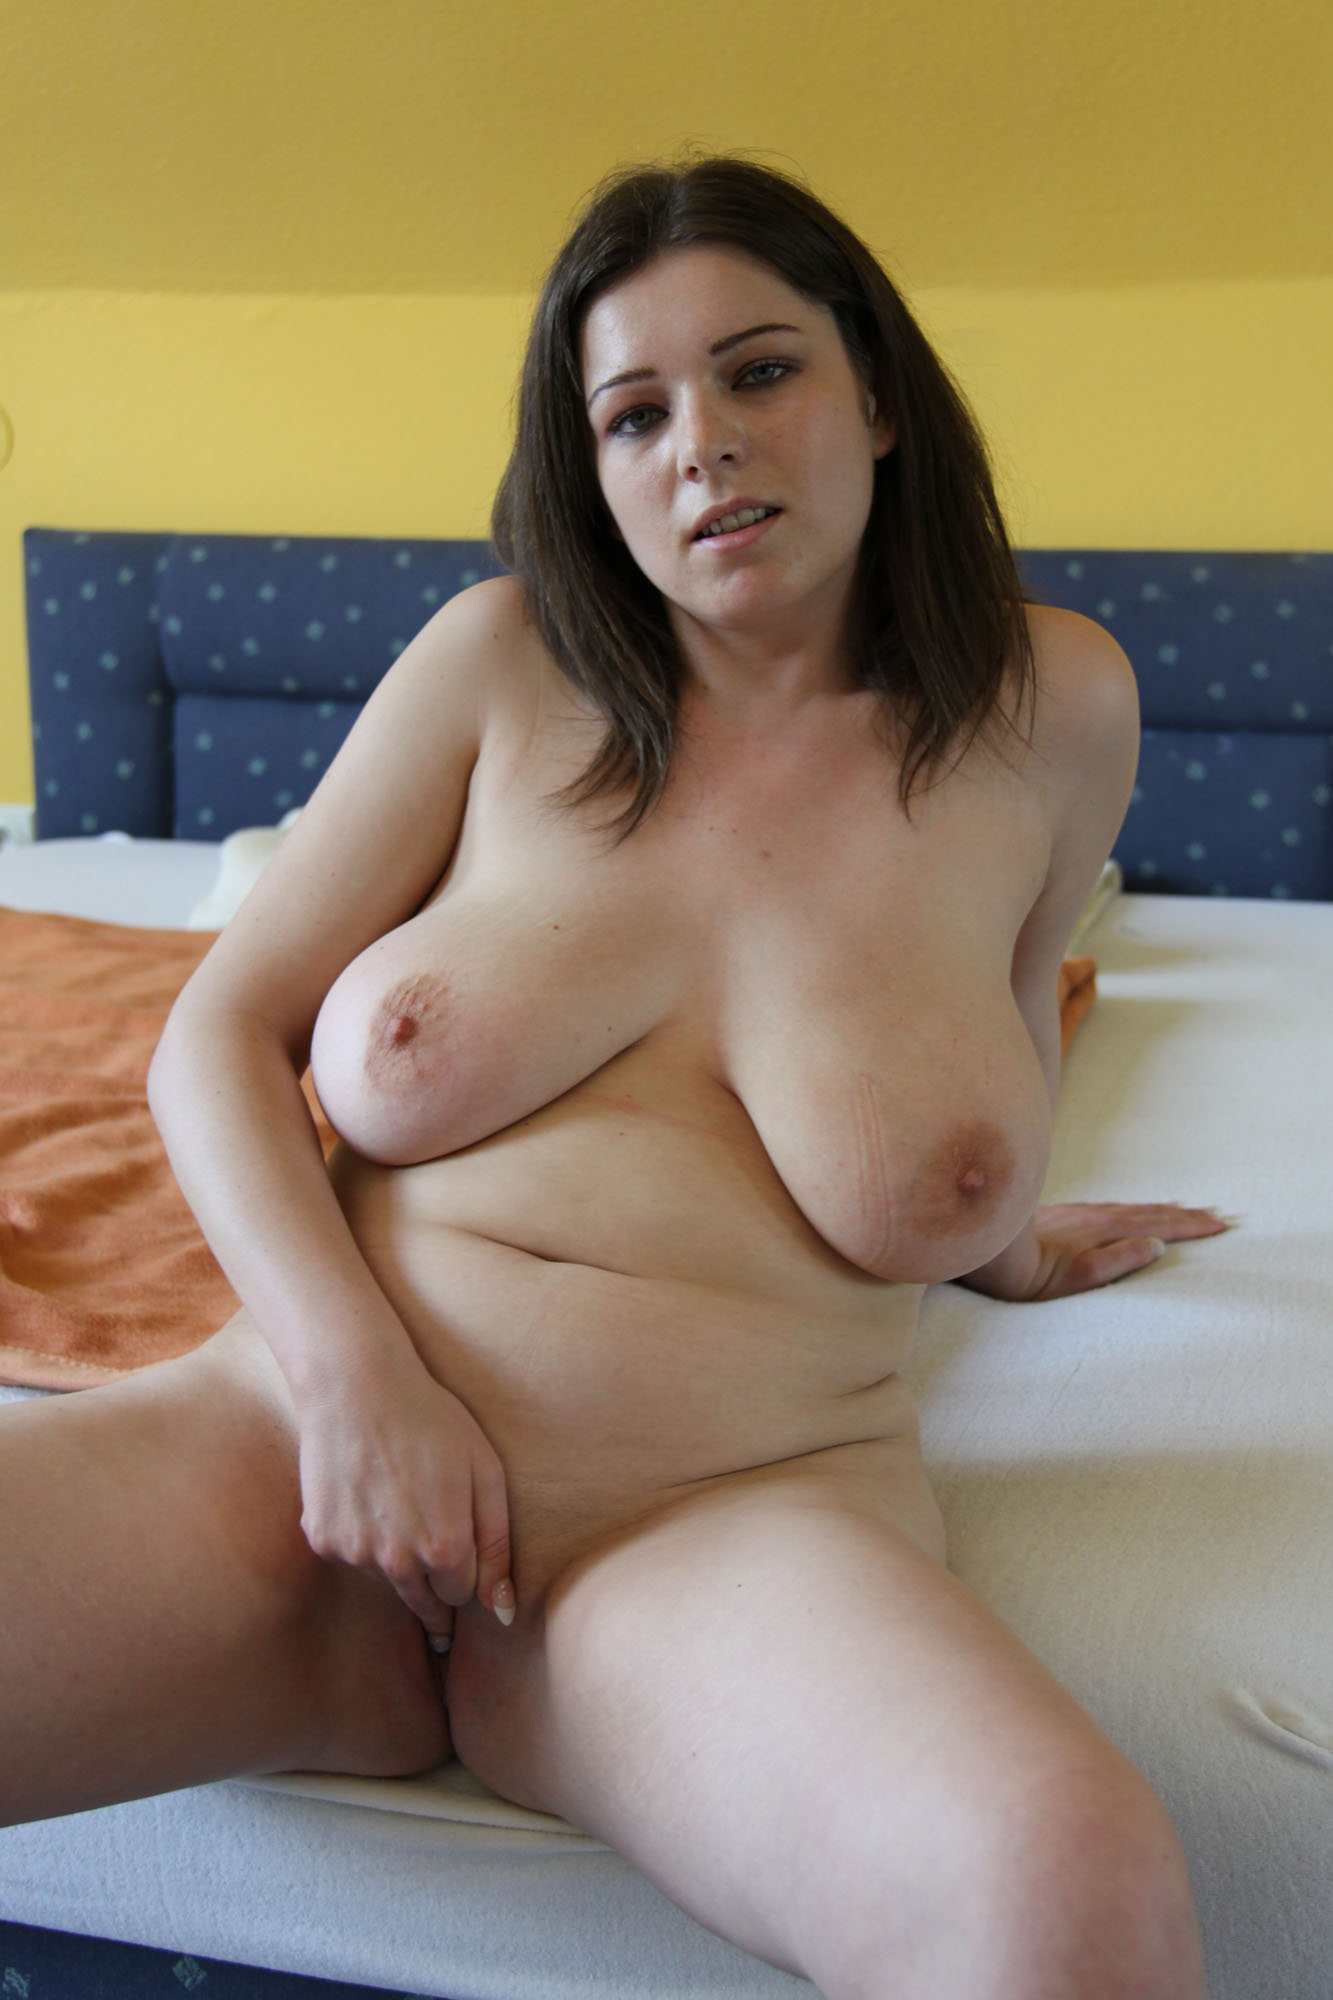 Teen girls hot bbw she has